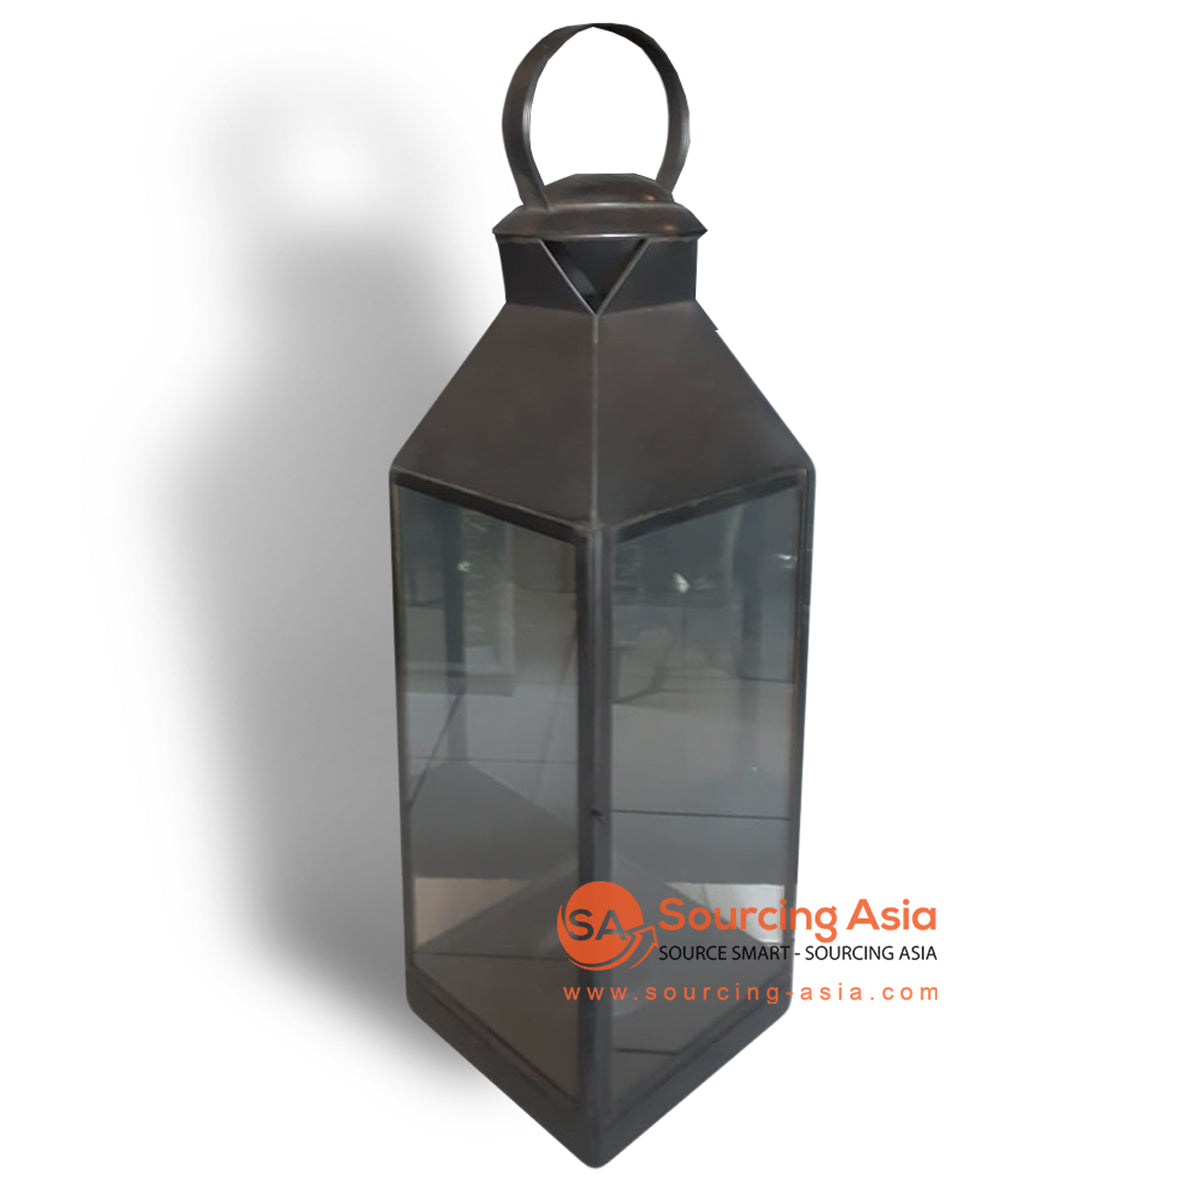 ODE036-1 COPPER LANTERN